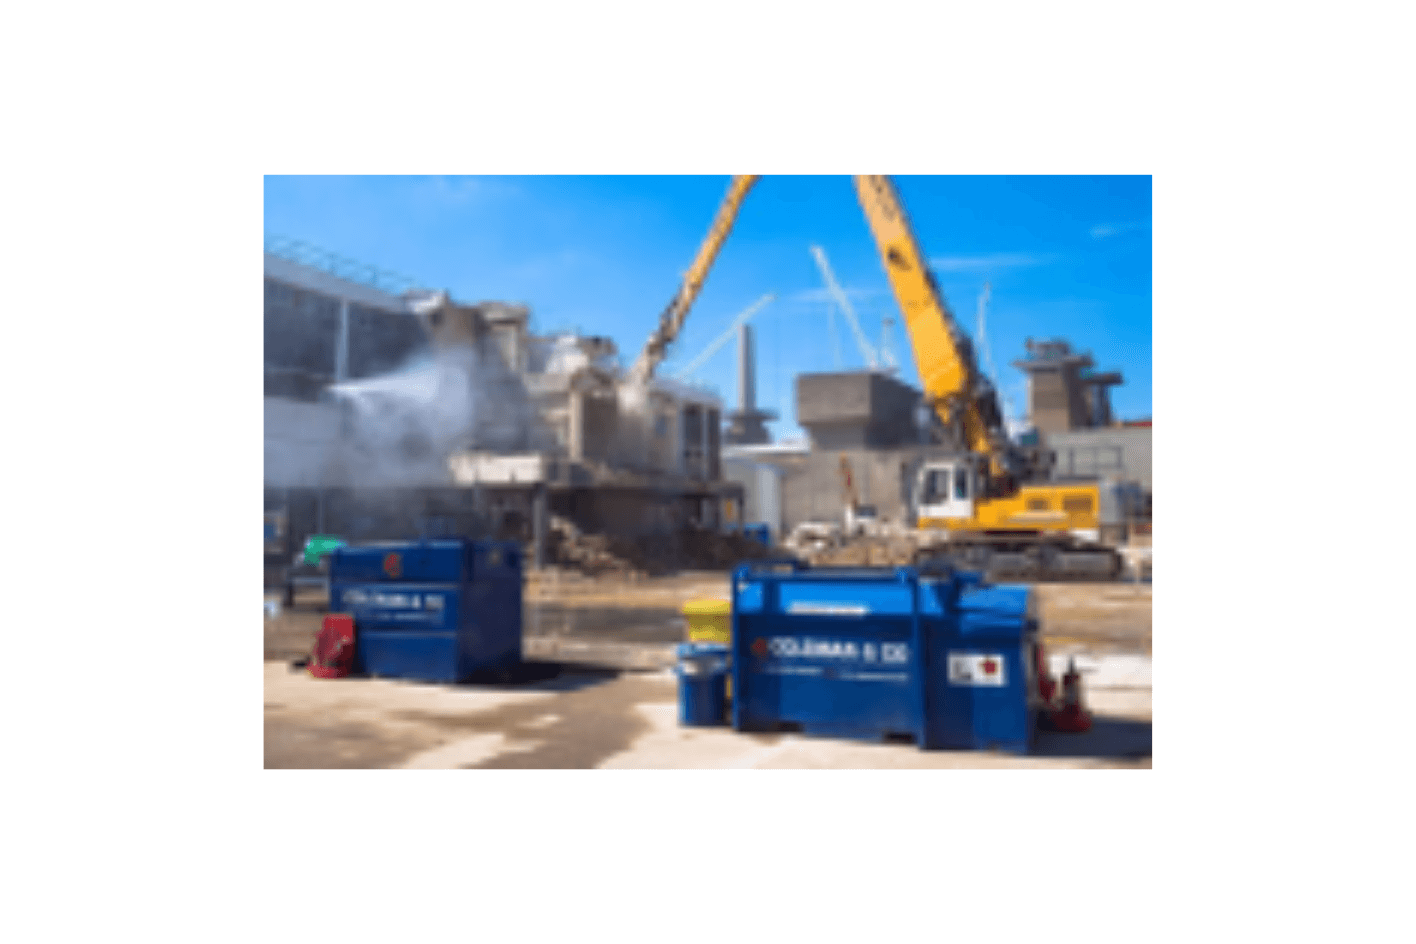 Hydramist 12 Dust Suppression Solution for Hire